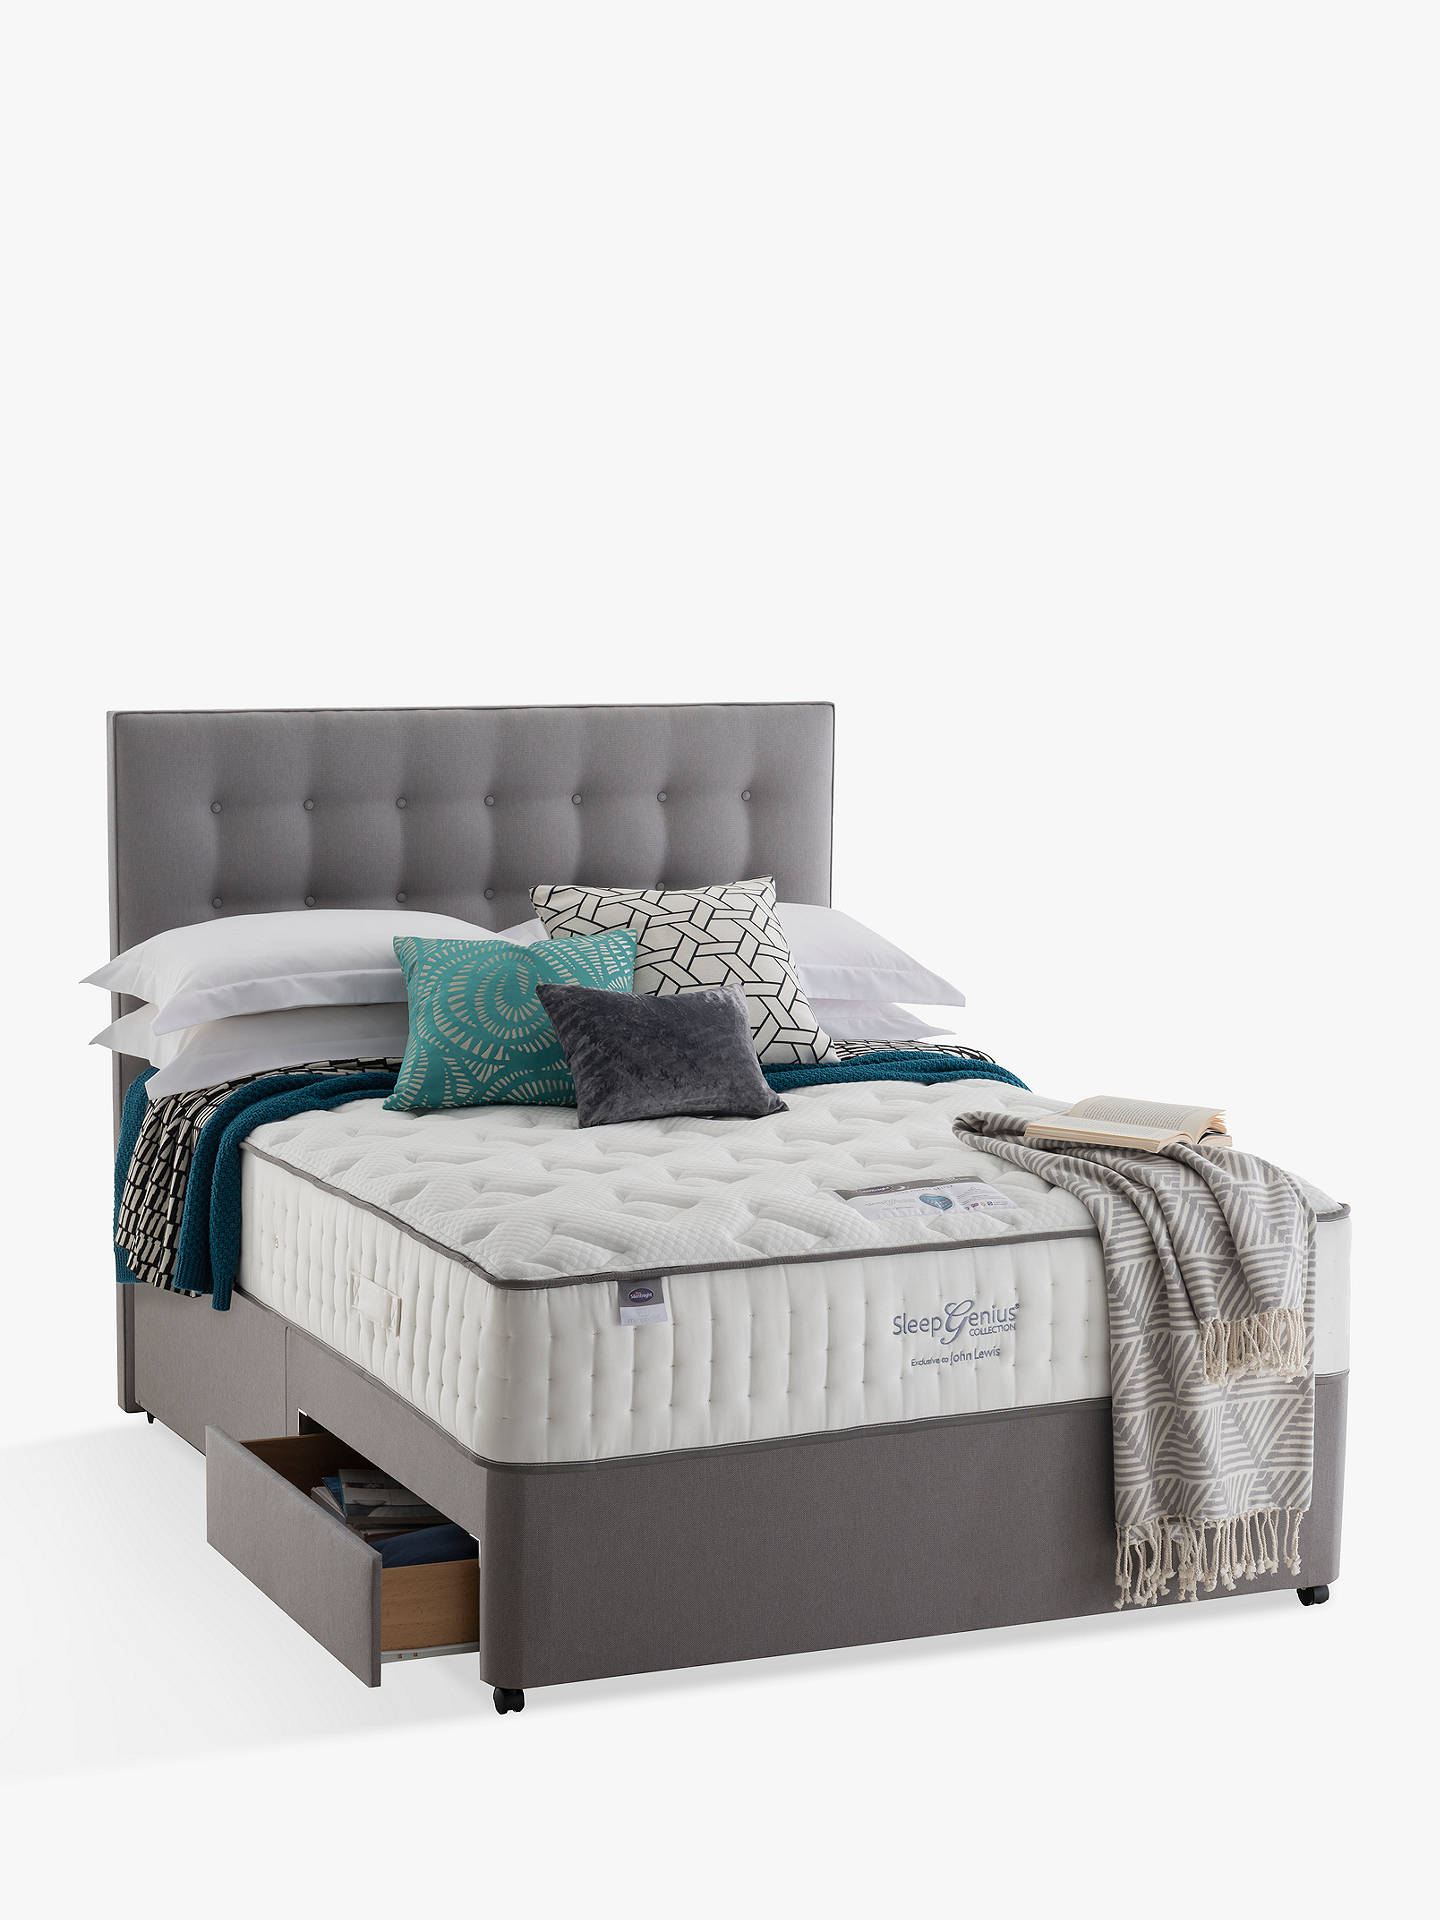 BuySilentnight Non Sprung 2 Drawer Divan Storage Bed, Super King Size Online at johnlewis.com